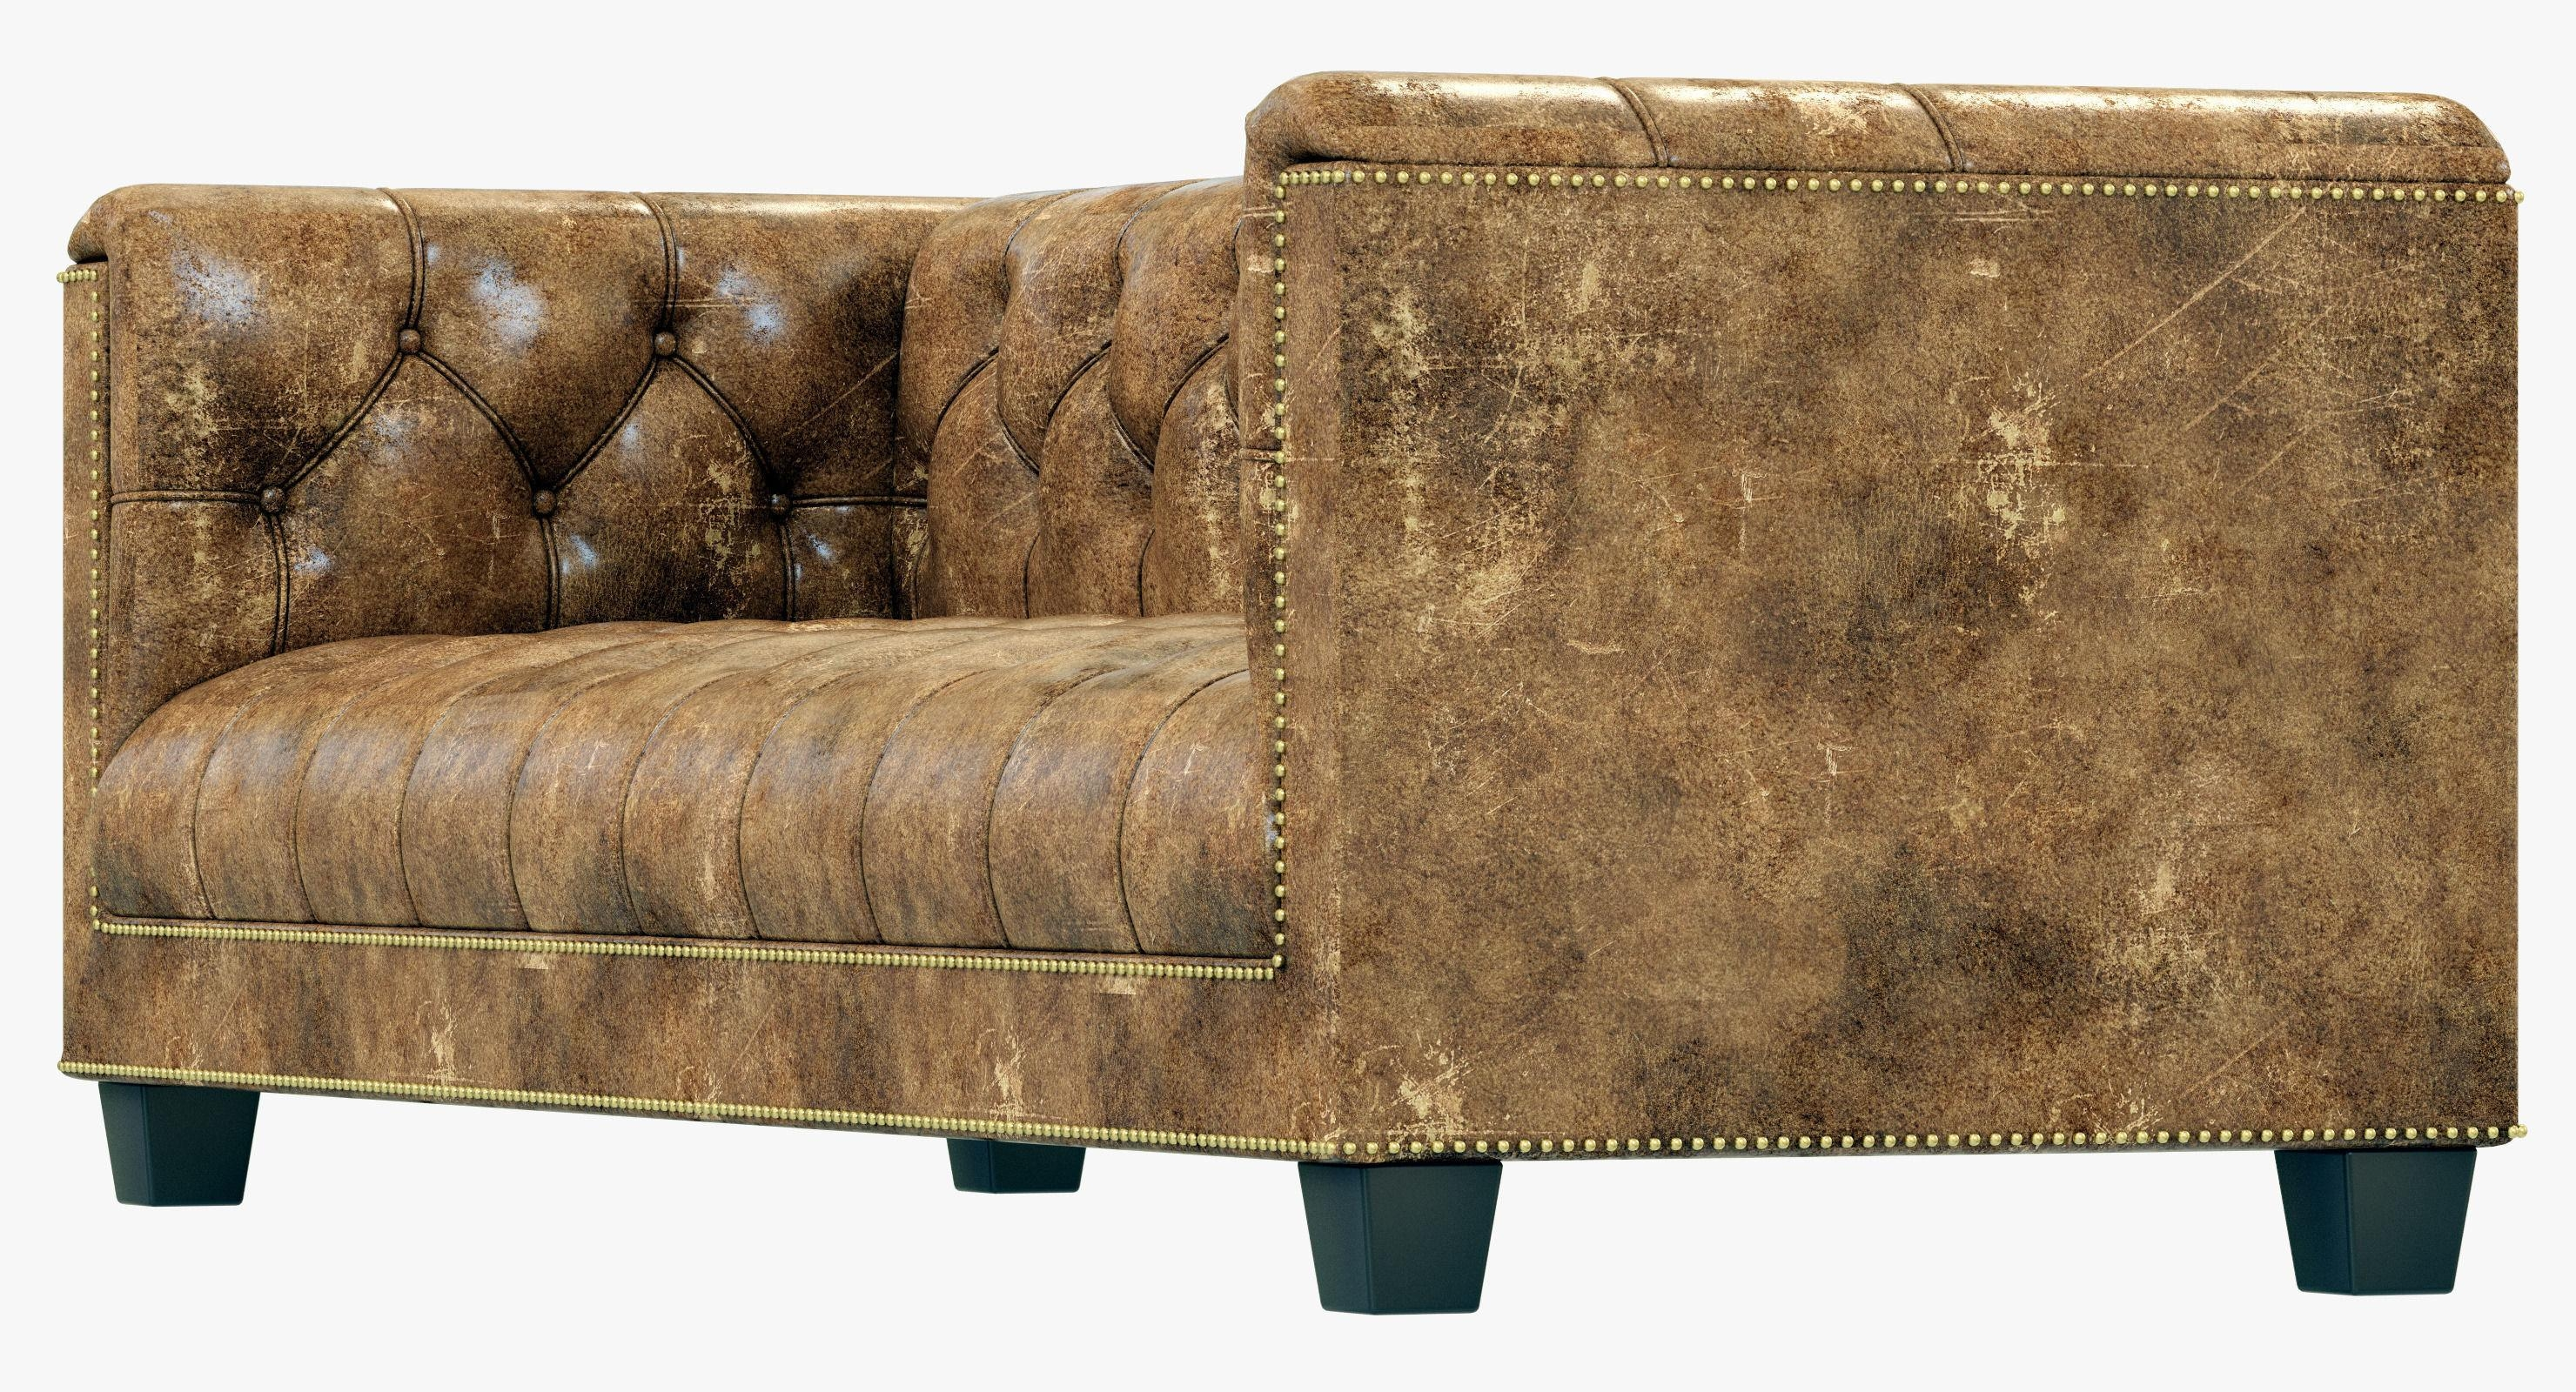 Restoration Hardware Savoy Leather Sofa 3D Model Throughout Savoy Leather Sofas (Image 13 of 20)